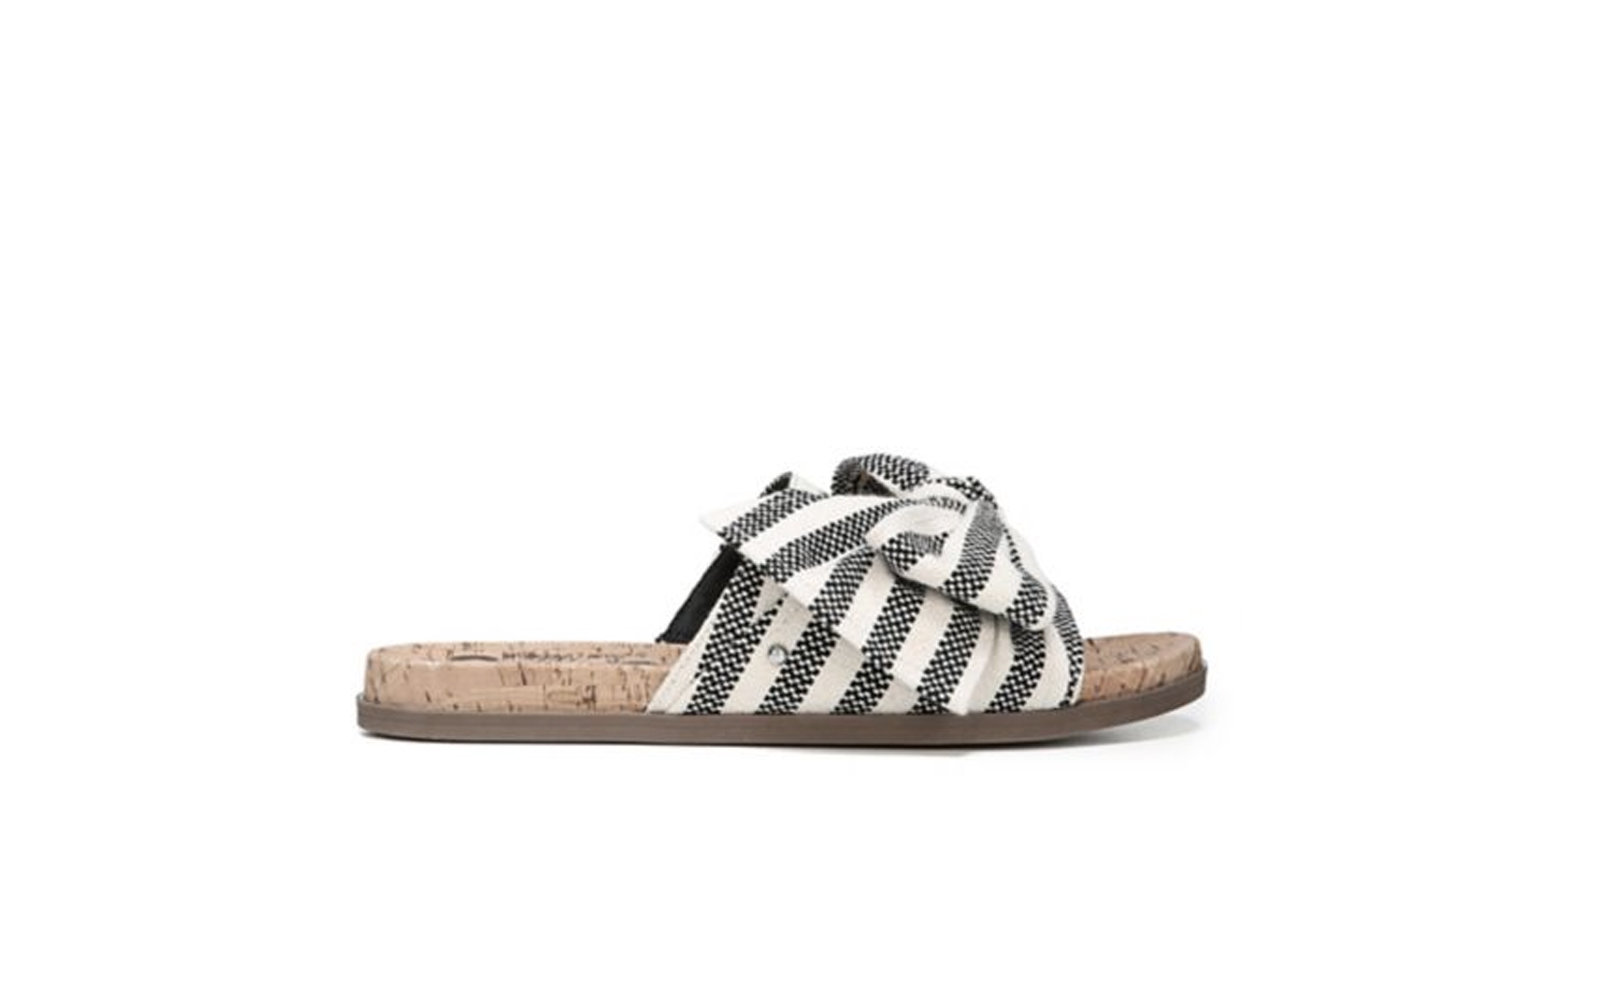 Circus by Sam Edelman 'Ninette' Striped Knot Slides